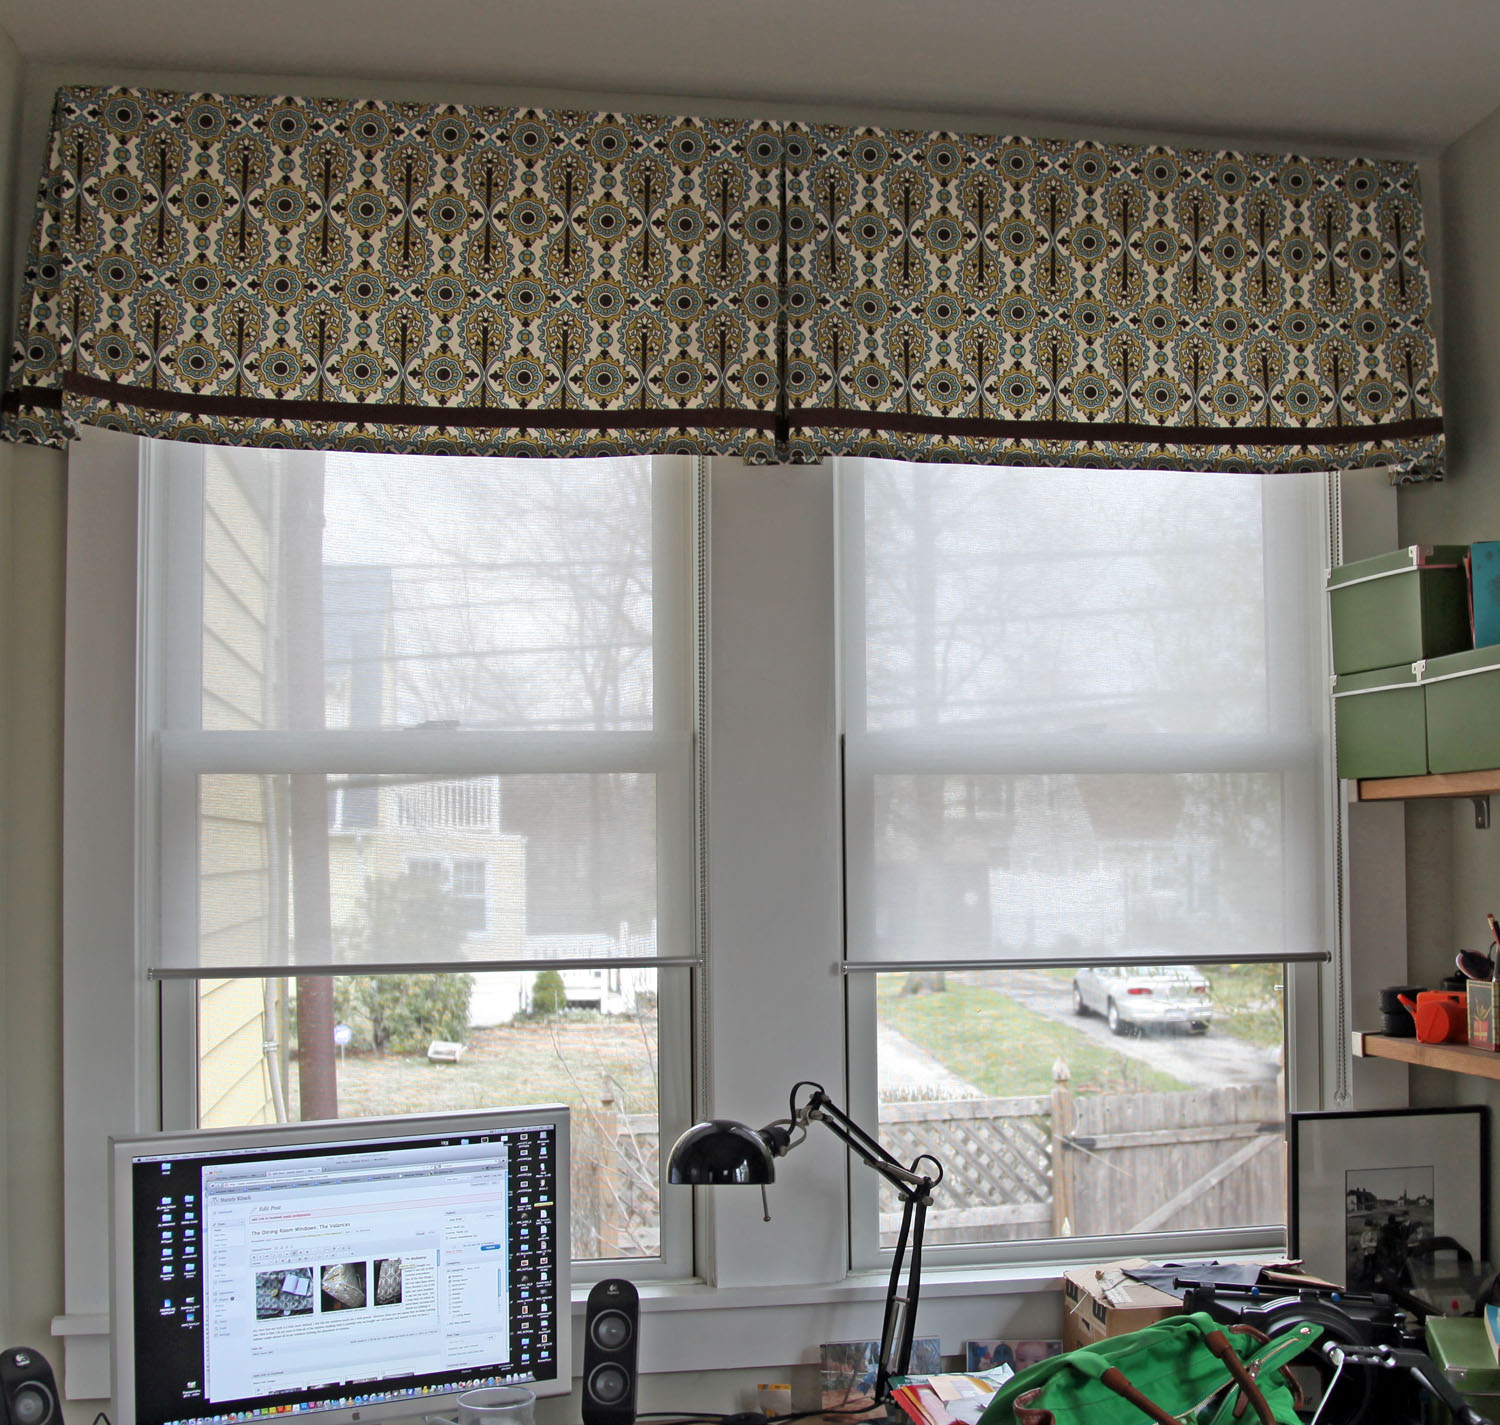 luxurious video swags treatments window scrolls valance drapery and diy with holdbacks youtube watch valances